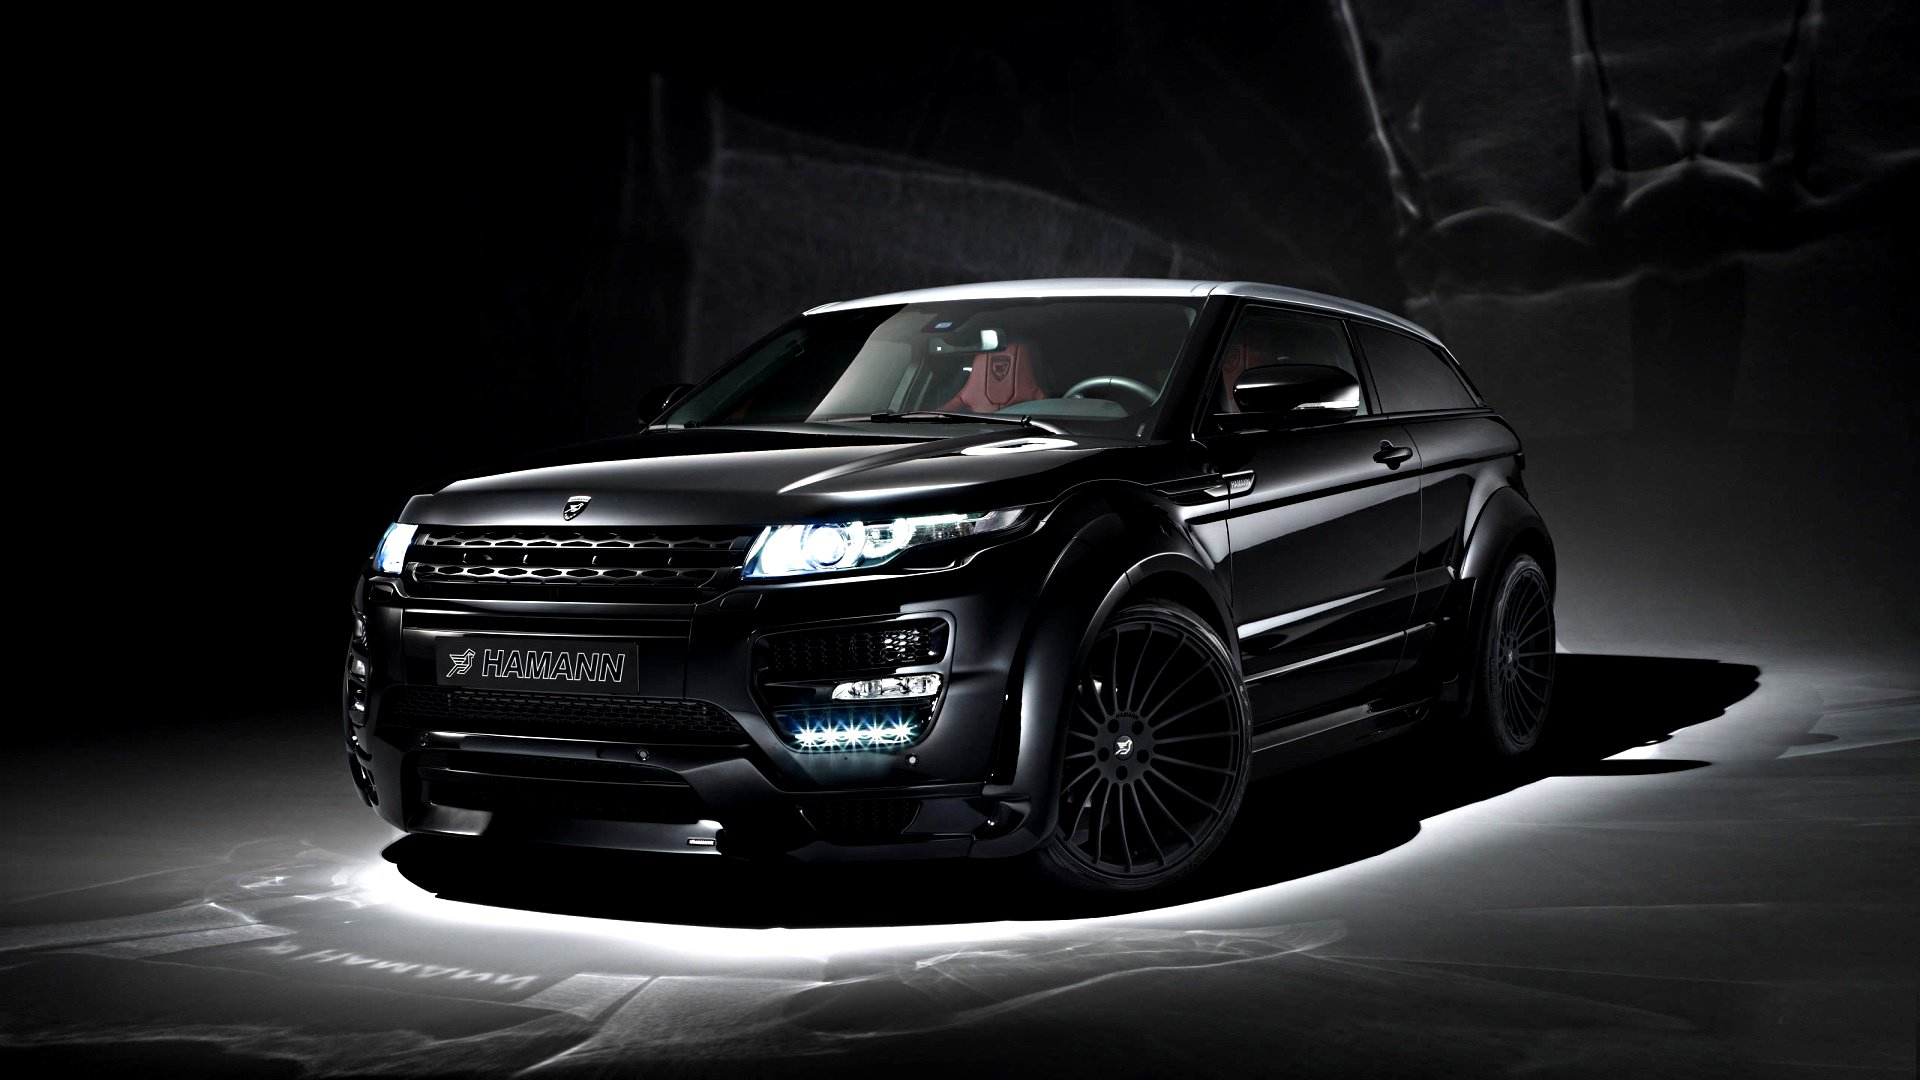 Range Rover Evoque Full HD Papel de Parede and Planos de ...